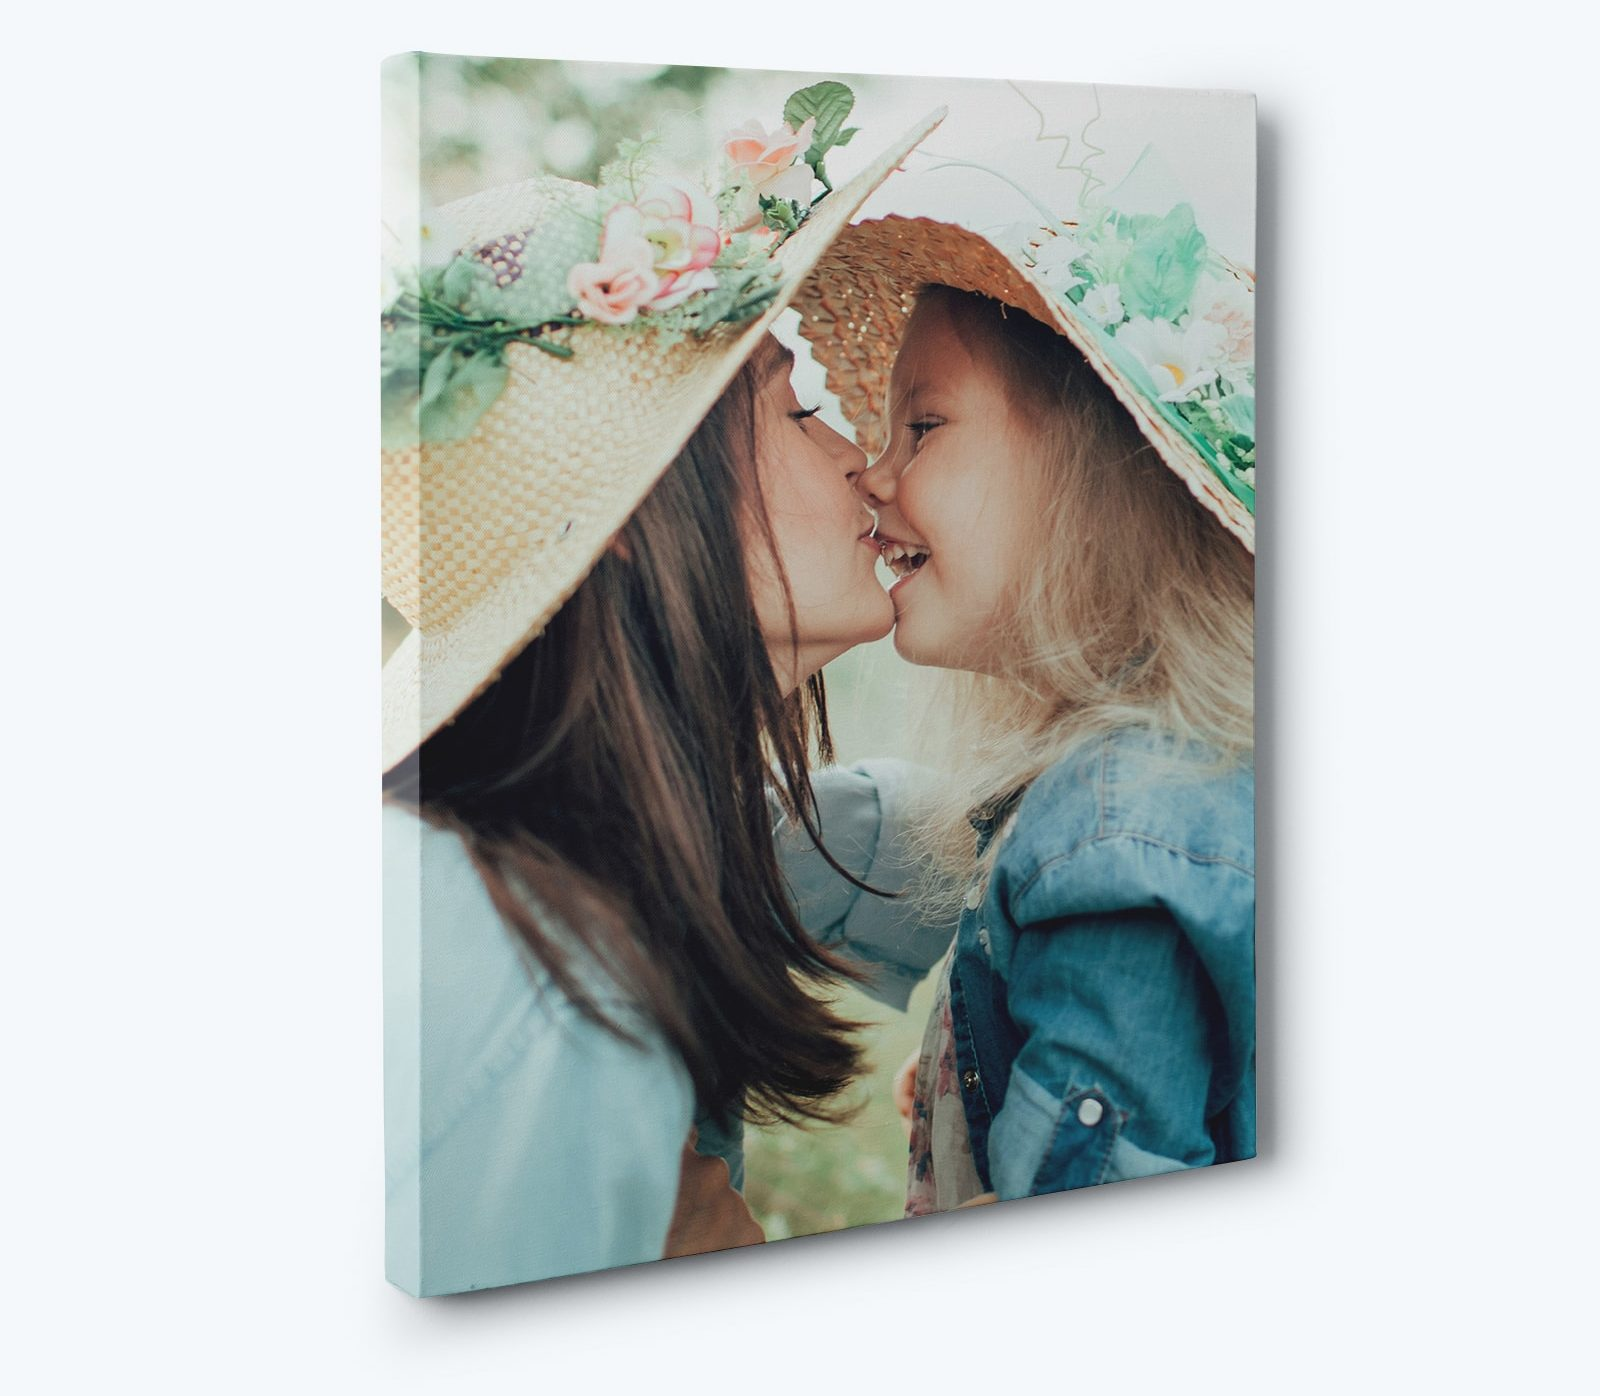 Print your iPhone photos on canvas with CanvasChamp.